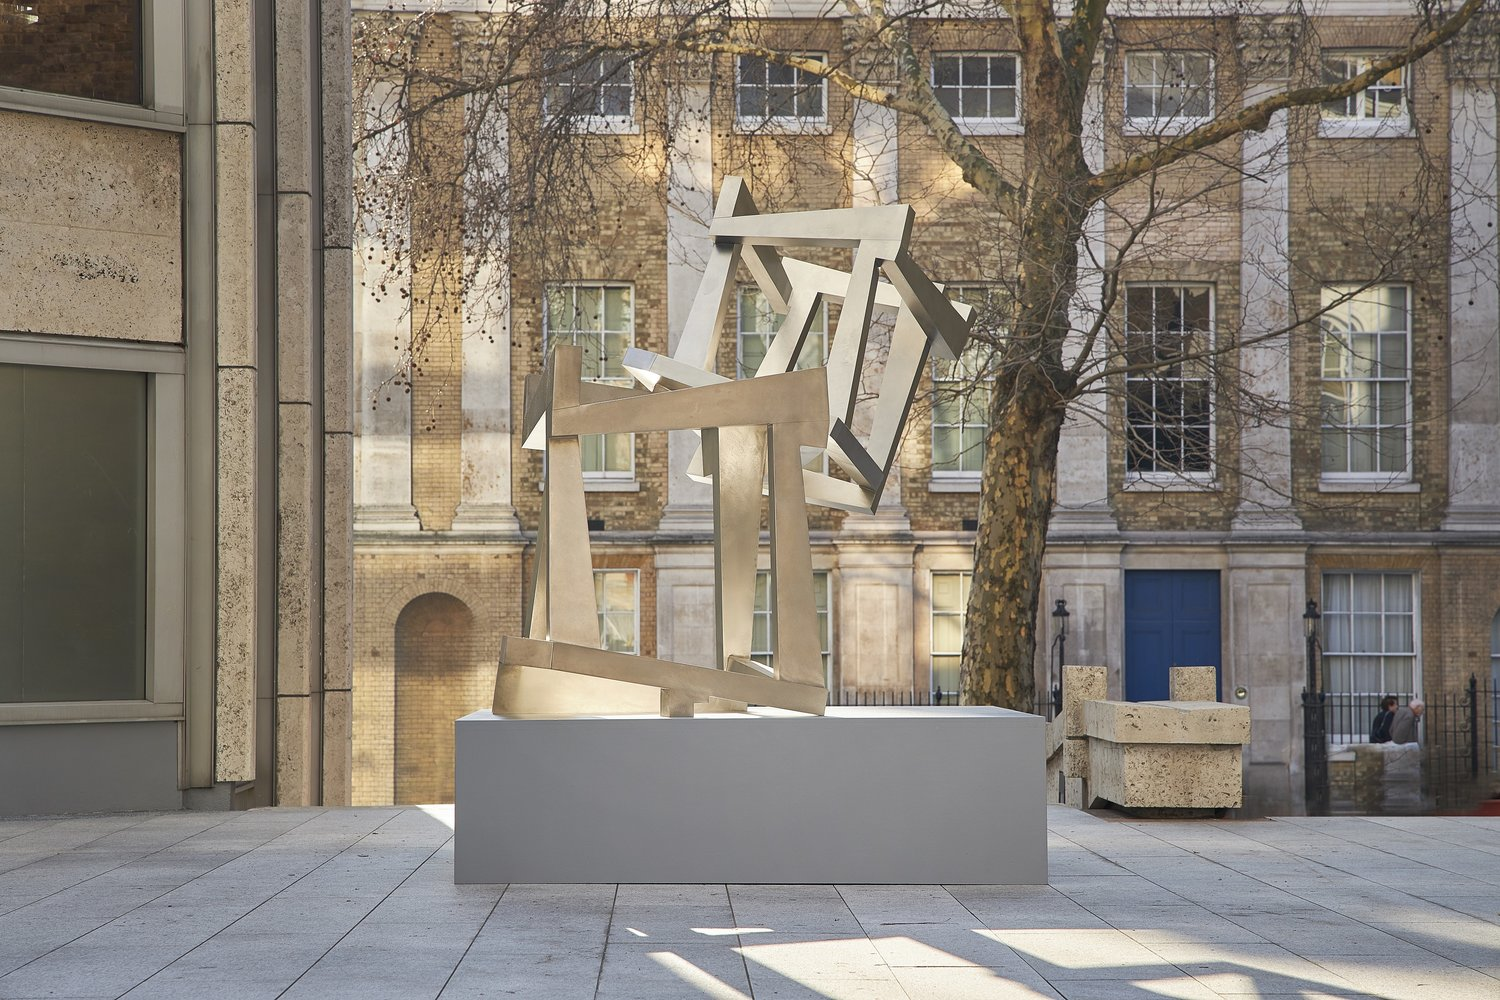 JEDD NOVATT 'CHAOS' SCULPTURES UNVEILED IN SMITHSON PLAZA IN COLLABORATION WITH WADDINGTON CUSTOT AND TISHMAN SPEYER.   March 2019